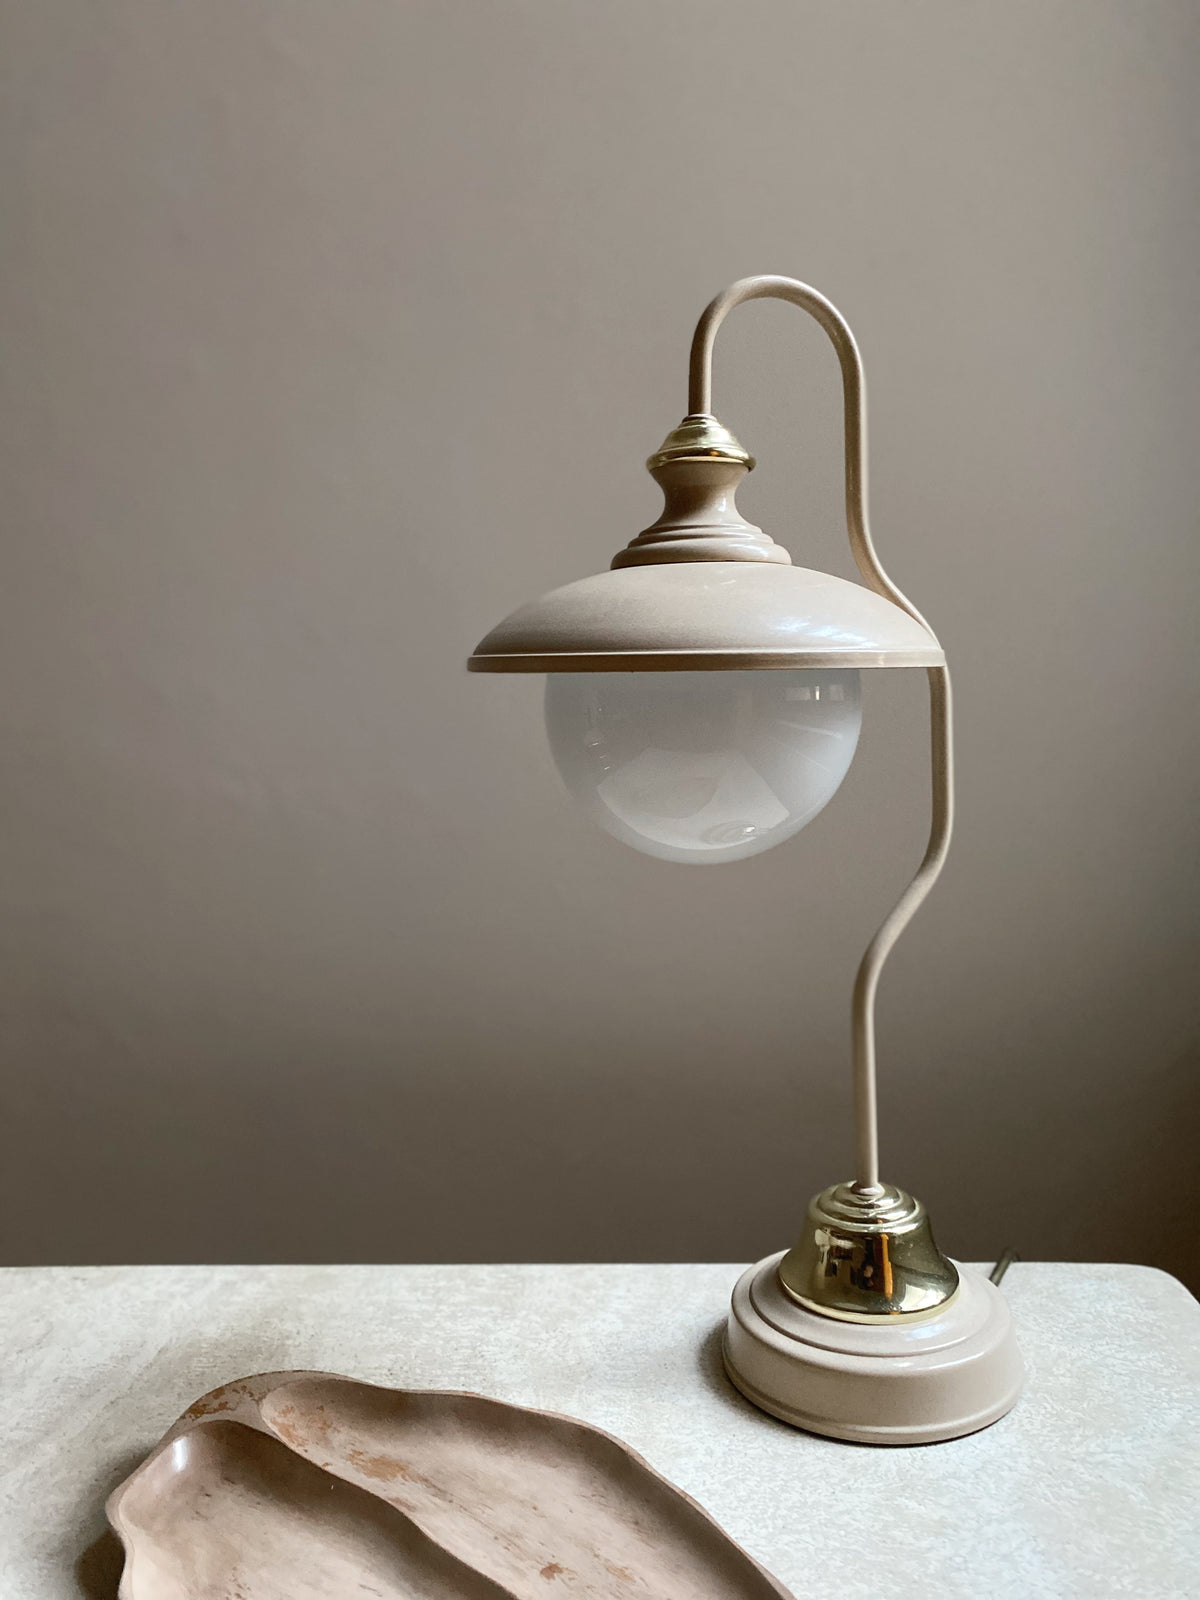 Curvy 70s Brass and Cream Table Lamp